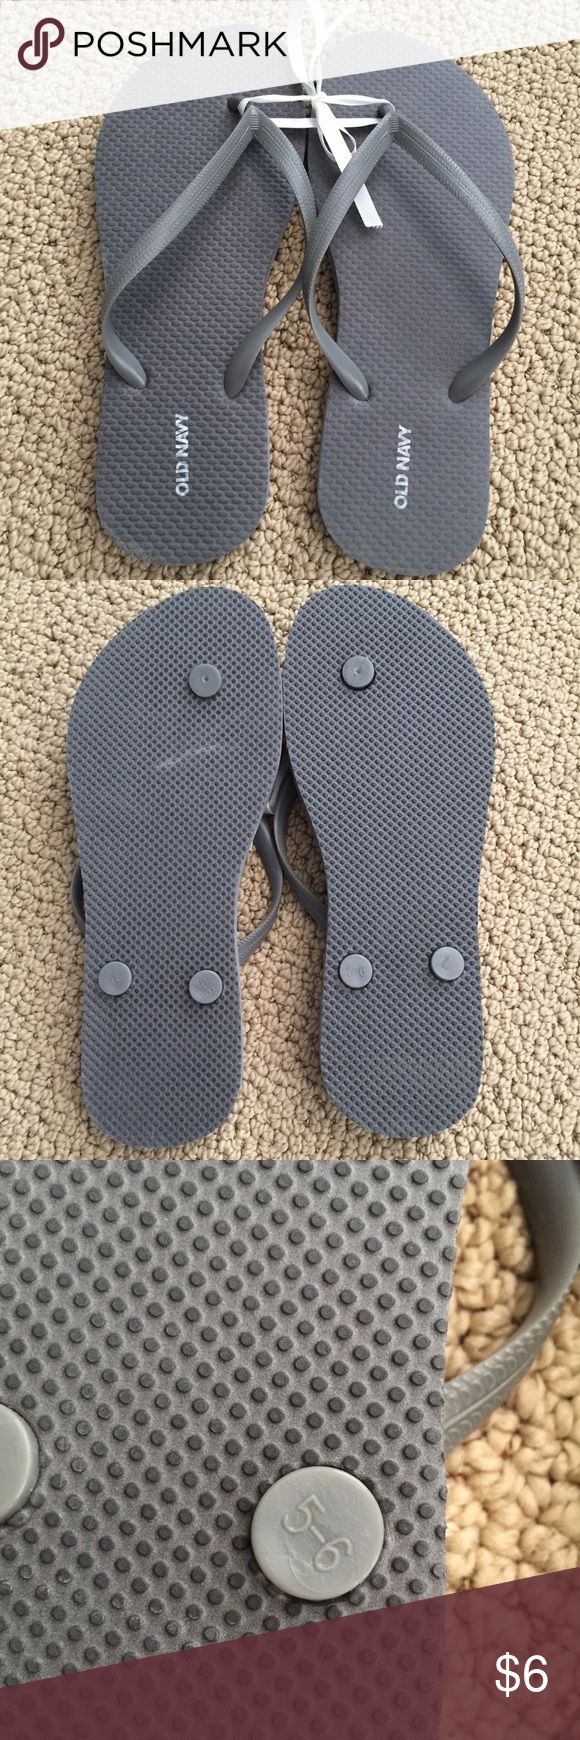 "NWT Classic Grey Flip Flops Classic grey flip flops. New with stickers, never worn. Marked as women's 6, a bit too short for me. 9 1/4"" length. Old Navy Shoes Sandals"